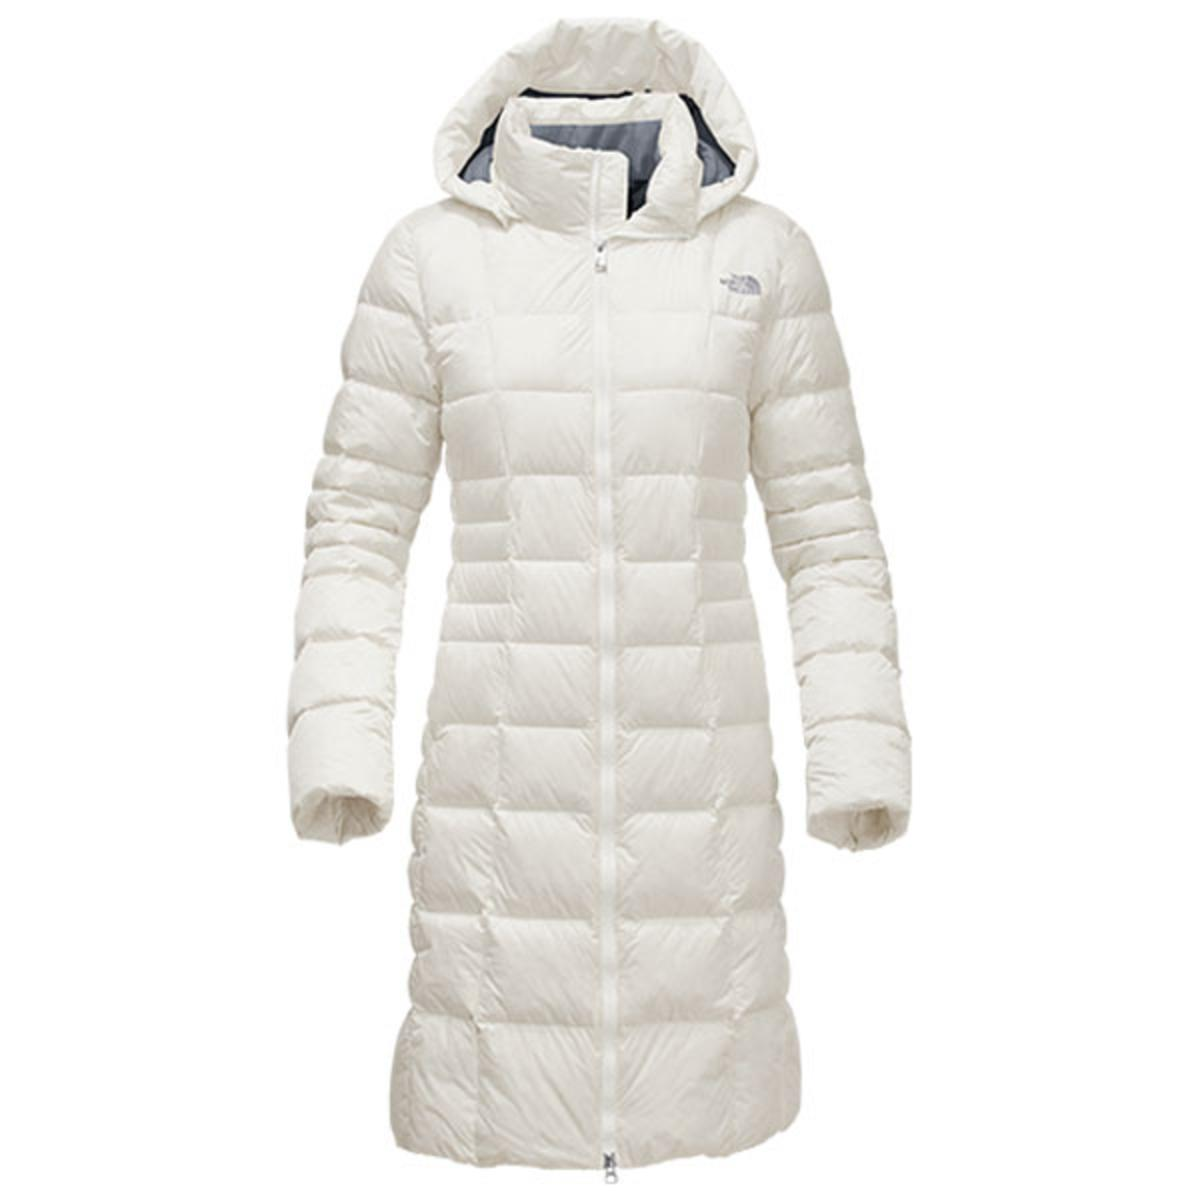 The North Face Women s Metropolis Parka II Jacket - Vintage White - The  Warming Store 47f26674c